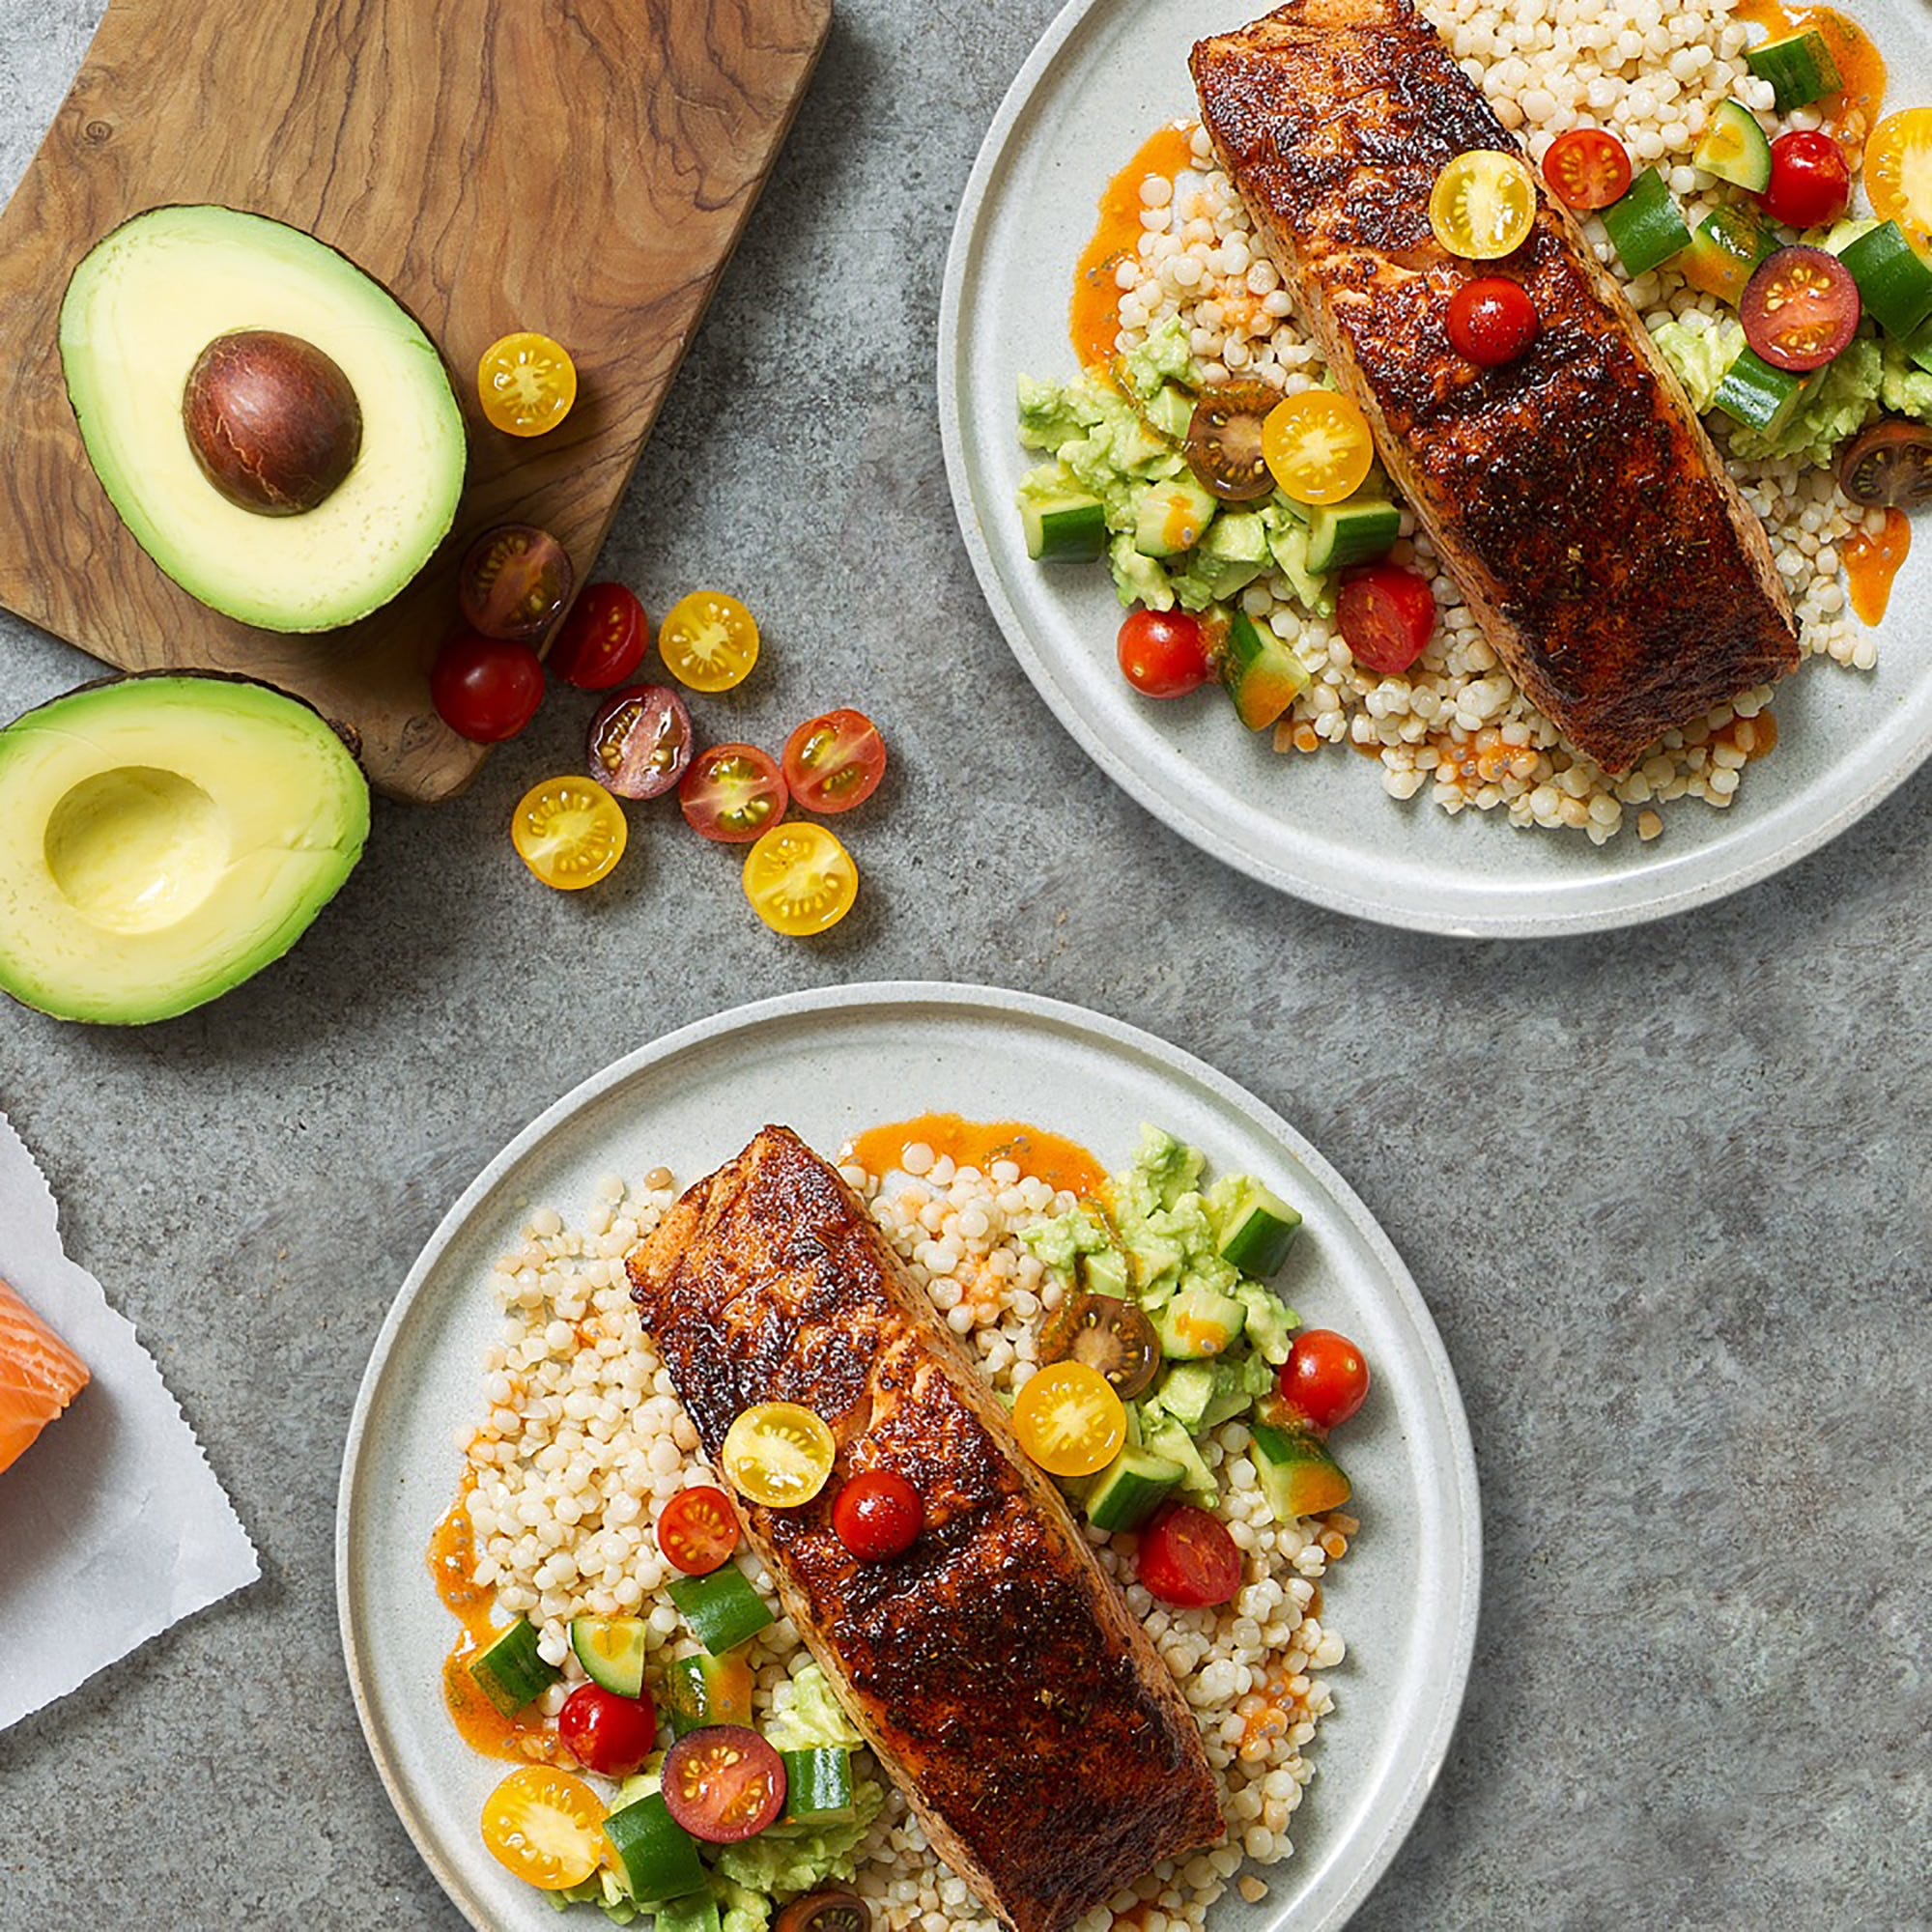 22 Meal Subscription Deals To Help You Conquer That 2019 New Year's Resolution